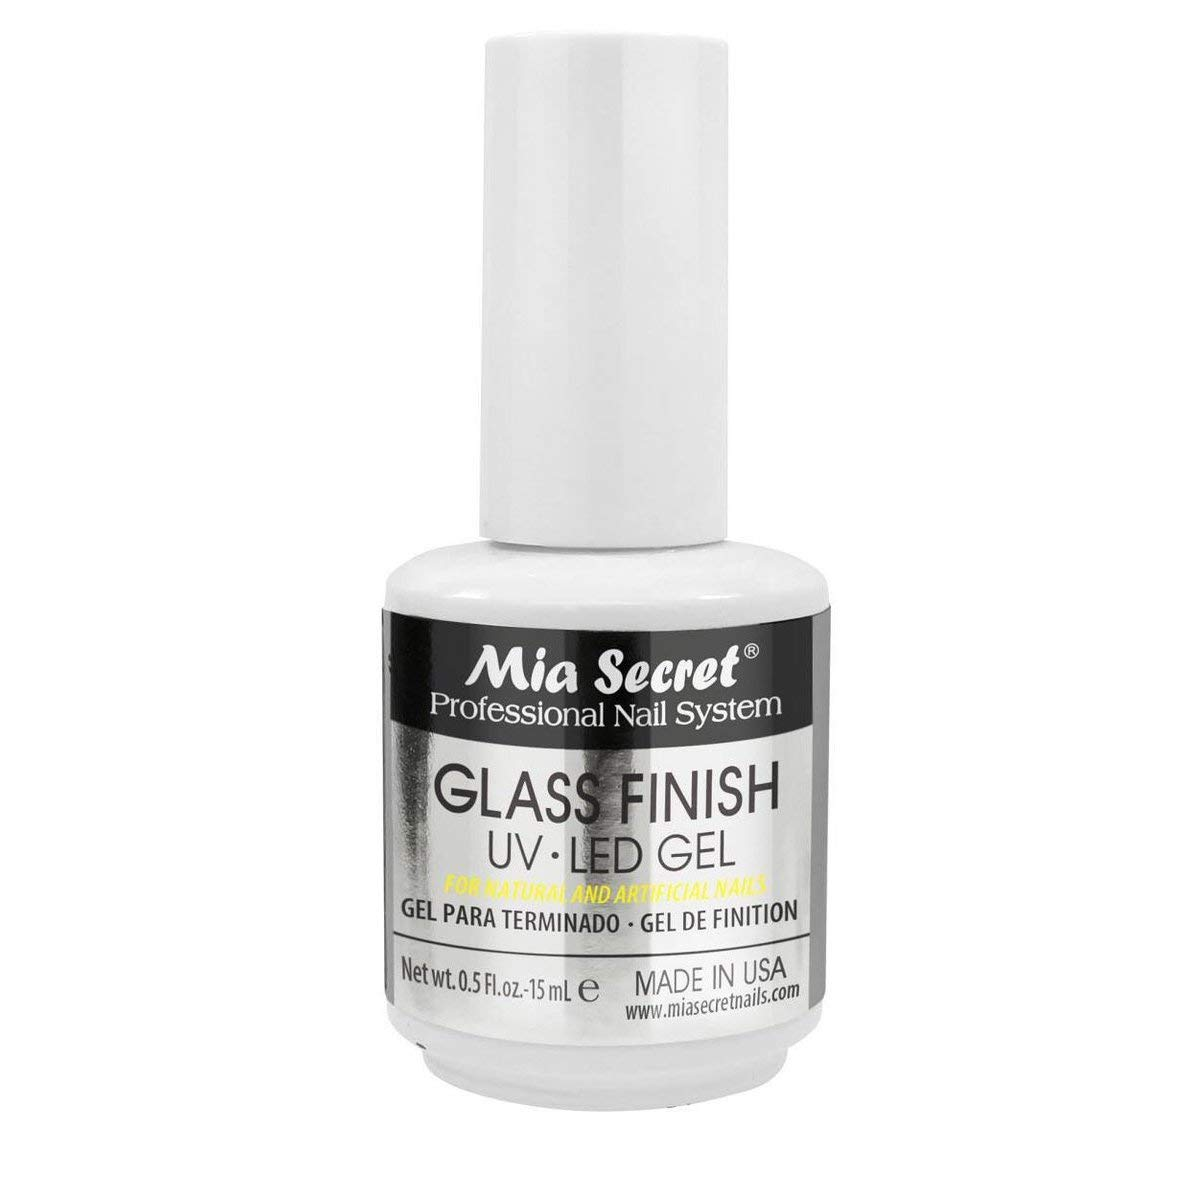 Mia Secret Chrome Mirror Nail Powder Glass Finish UV LED Gel (GLASS FINISH GEL)